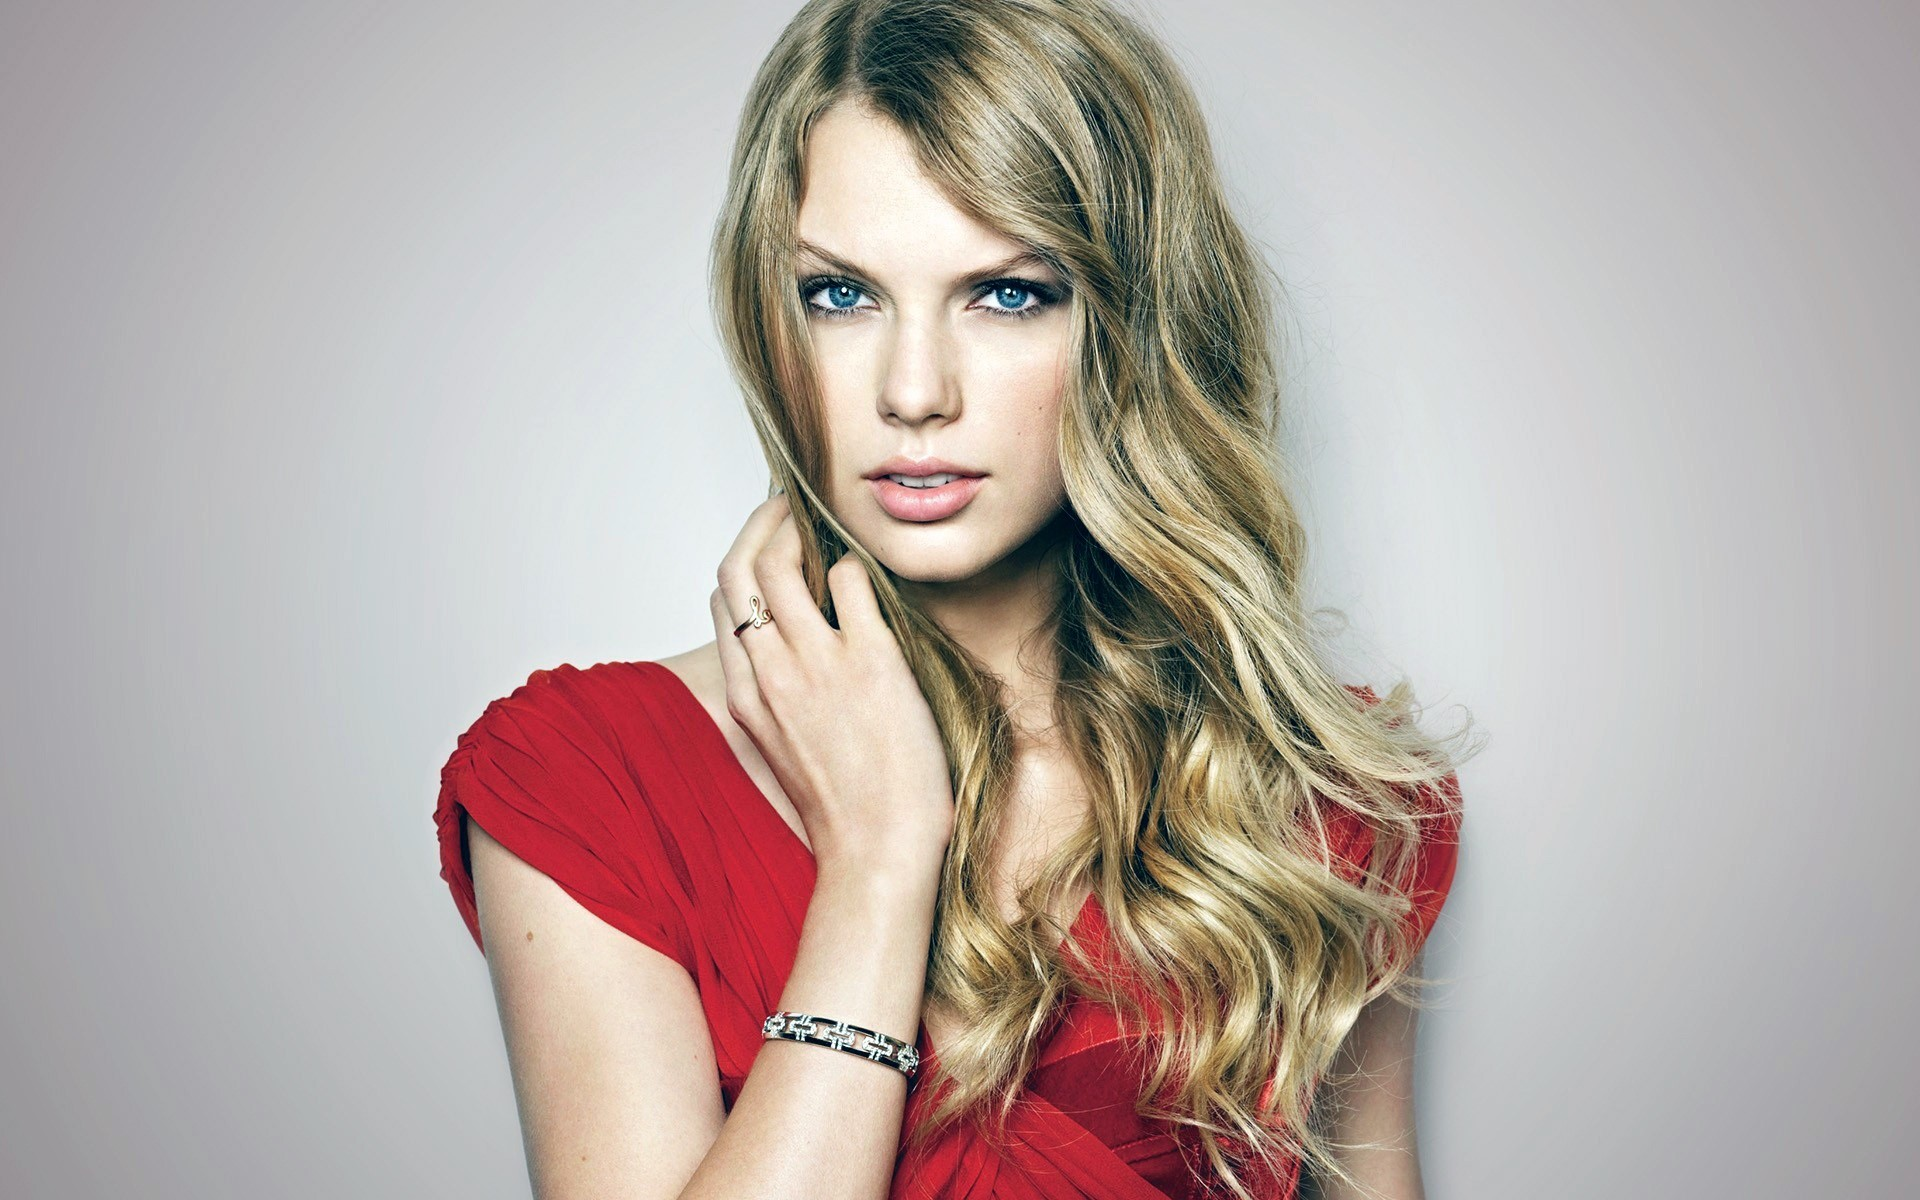 Wallpaper Taylor swift 2010